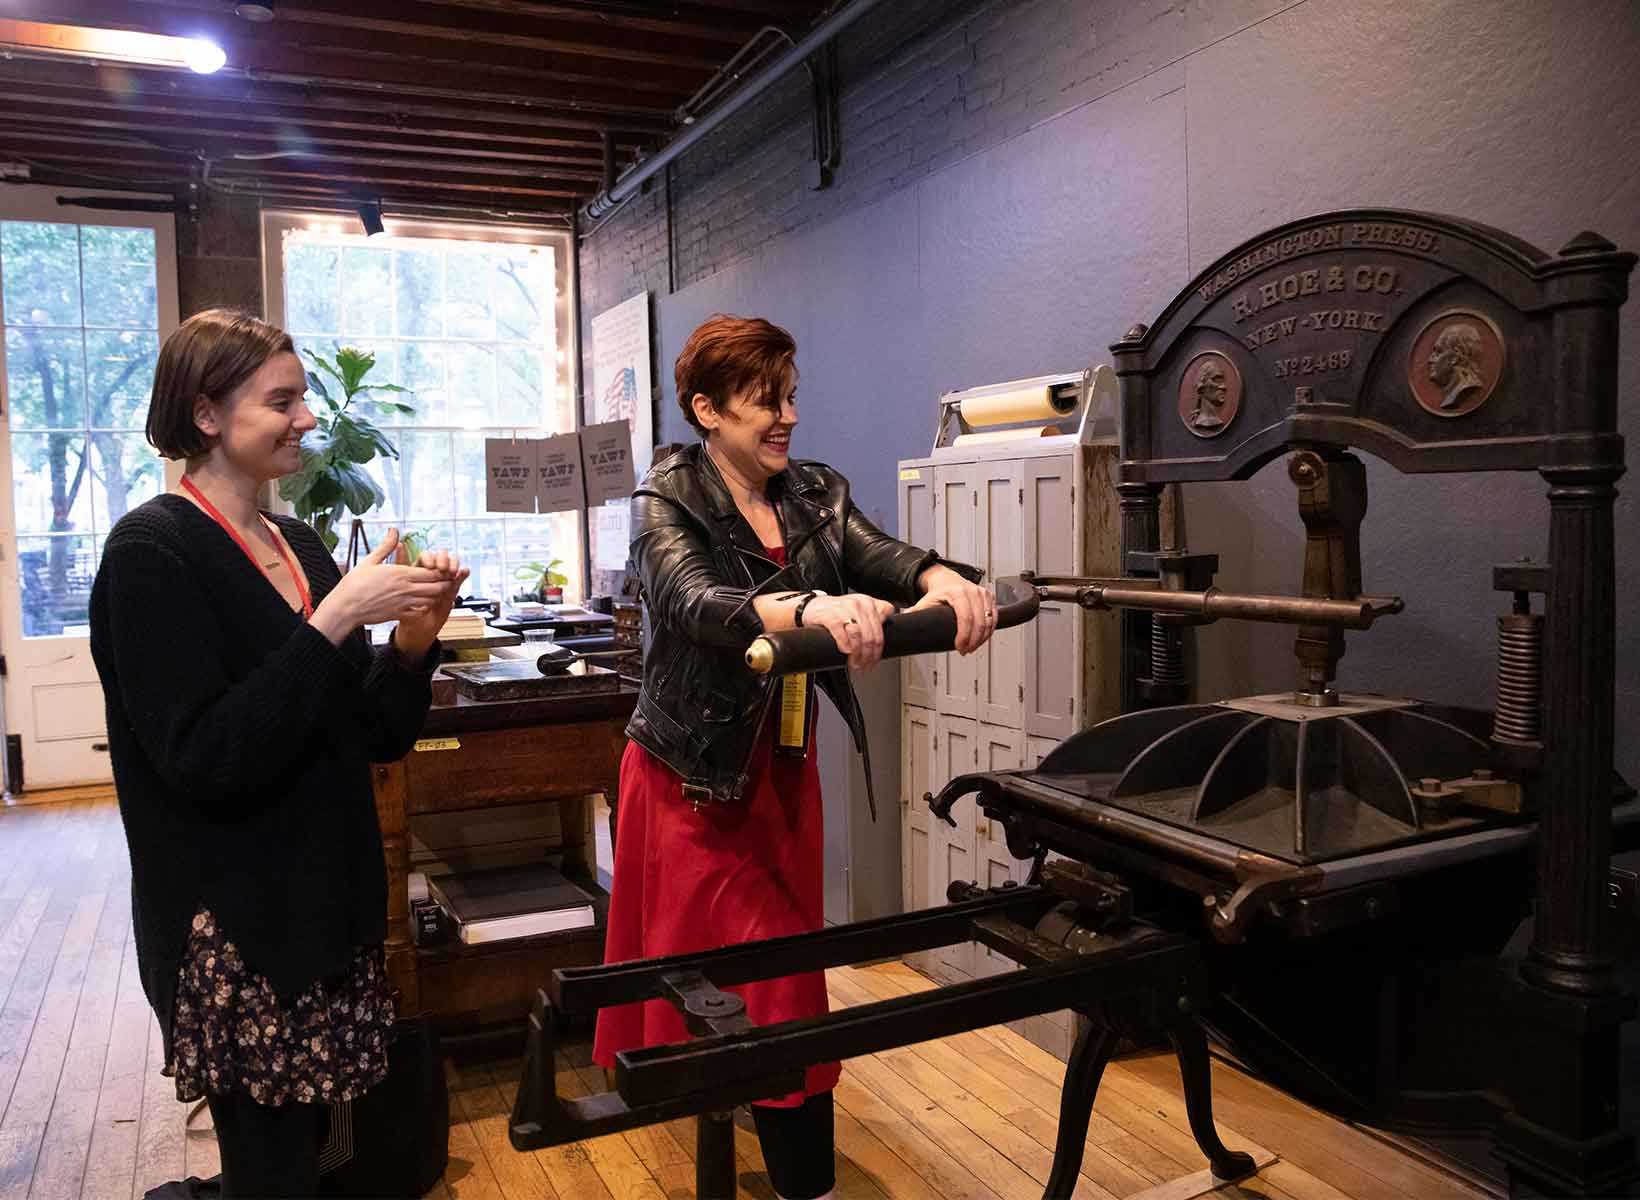 A woman in a red dress pulls on the lever of a letterpress